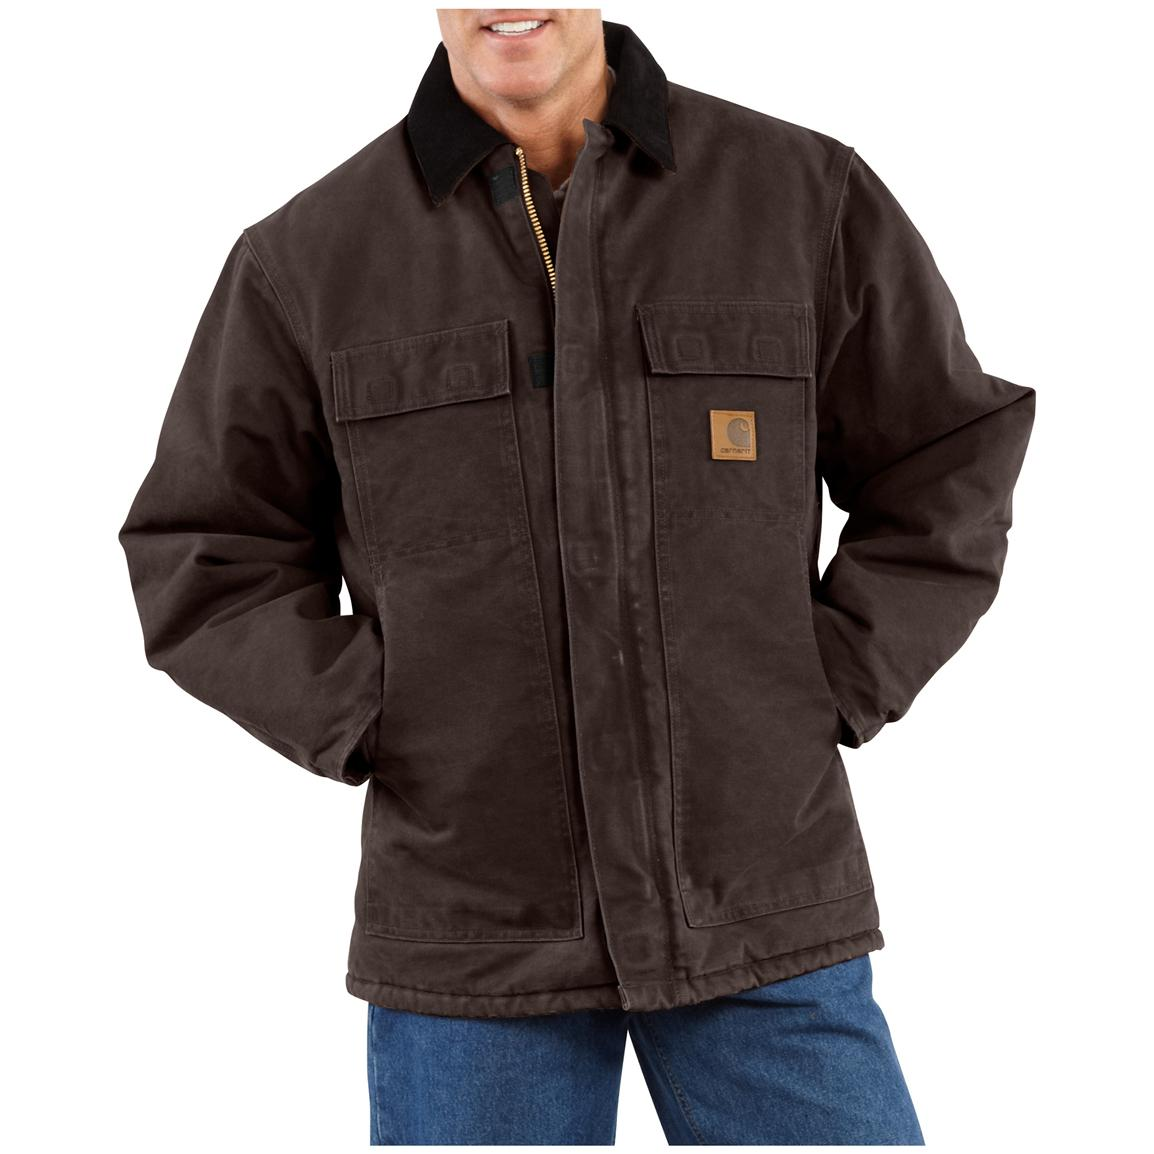 Carhartt Men's Sandstone Arctic Quilt Lined Traditional Coat, Dark Brown